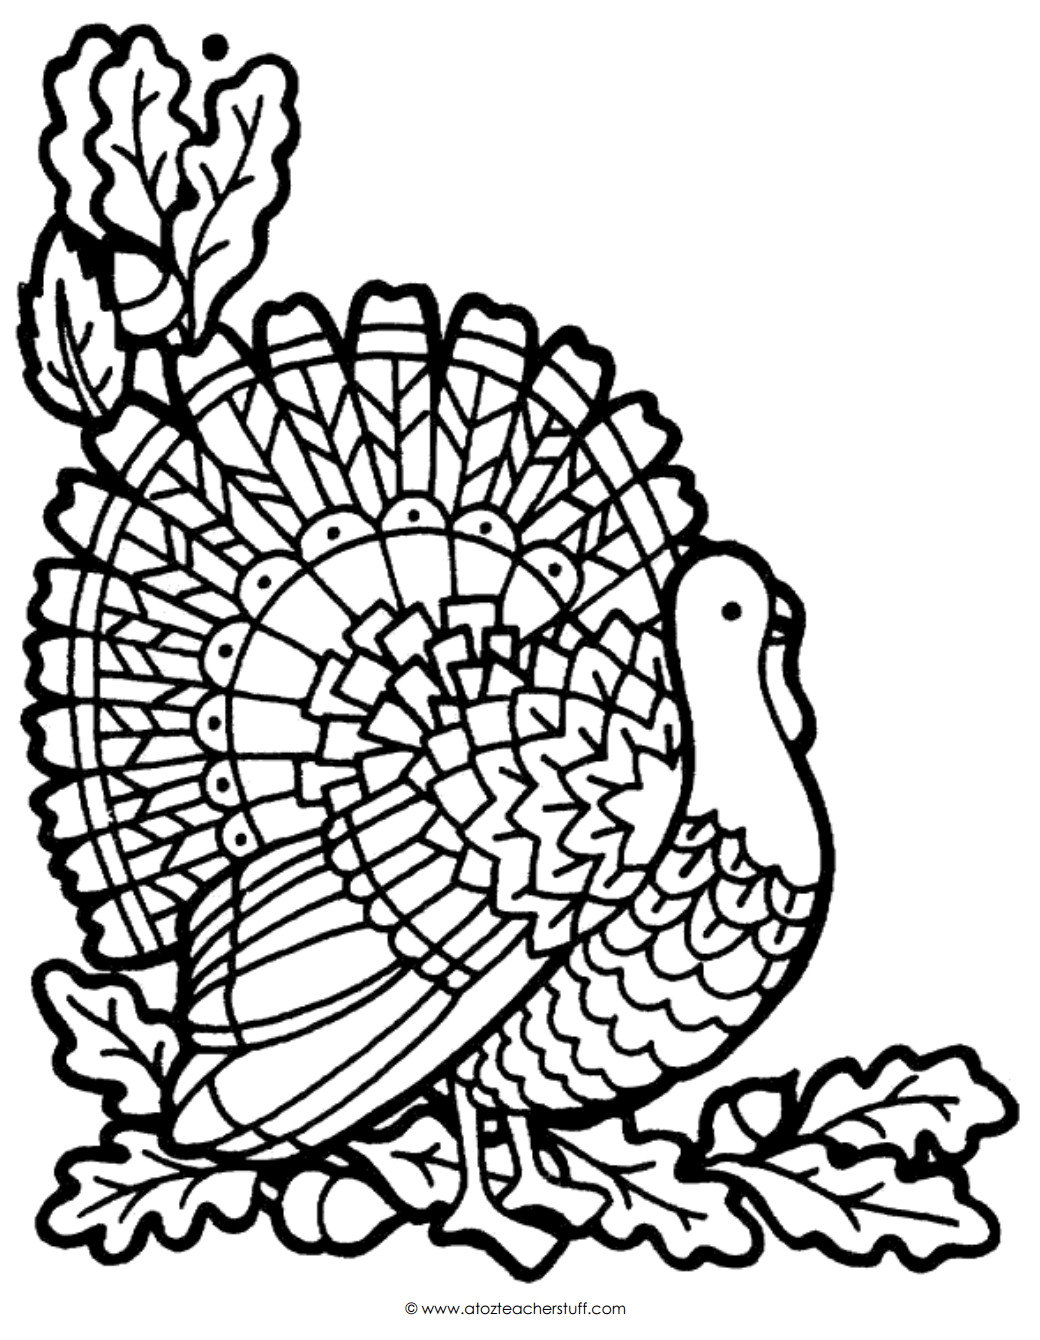 Draw Turkey Worksheet